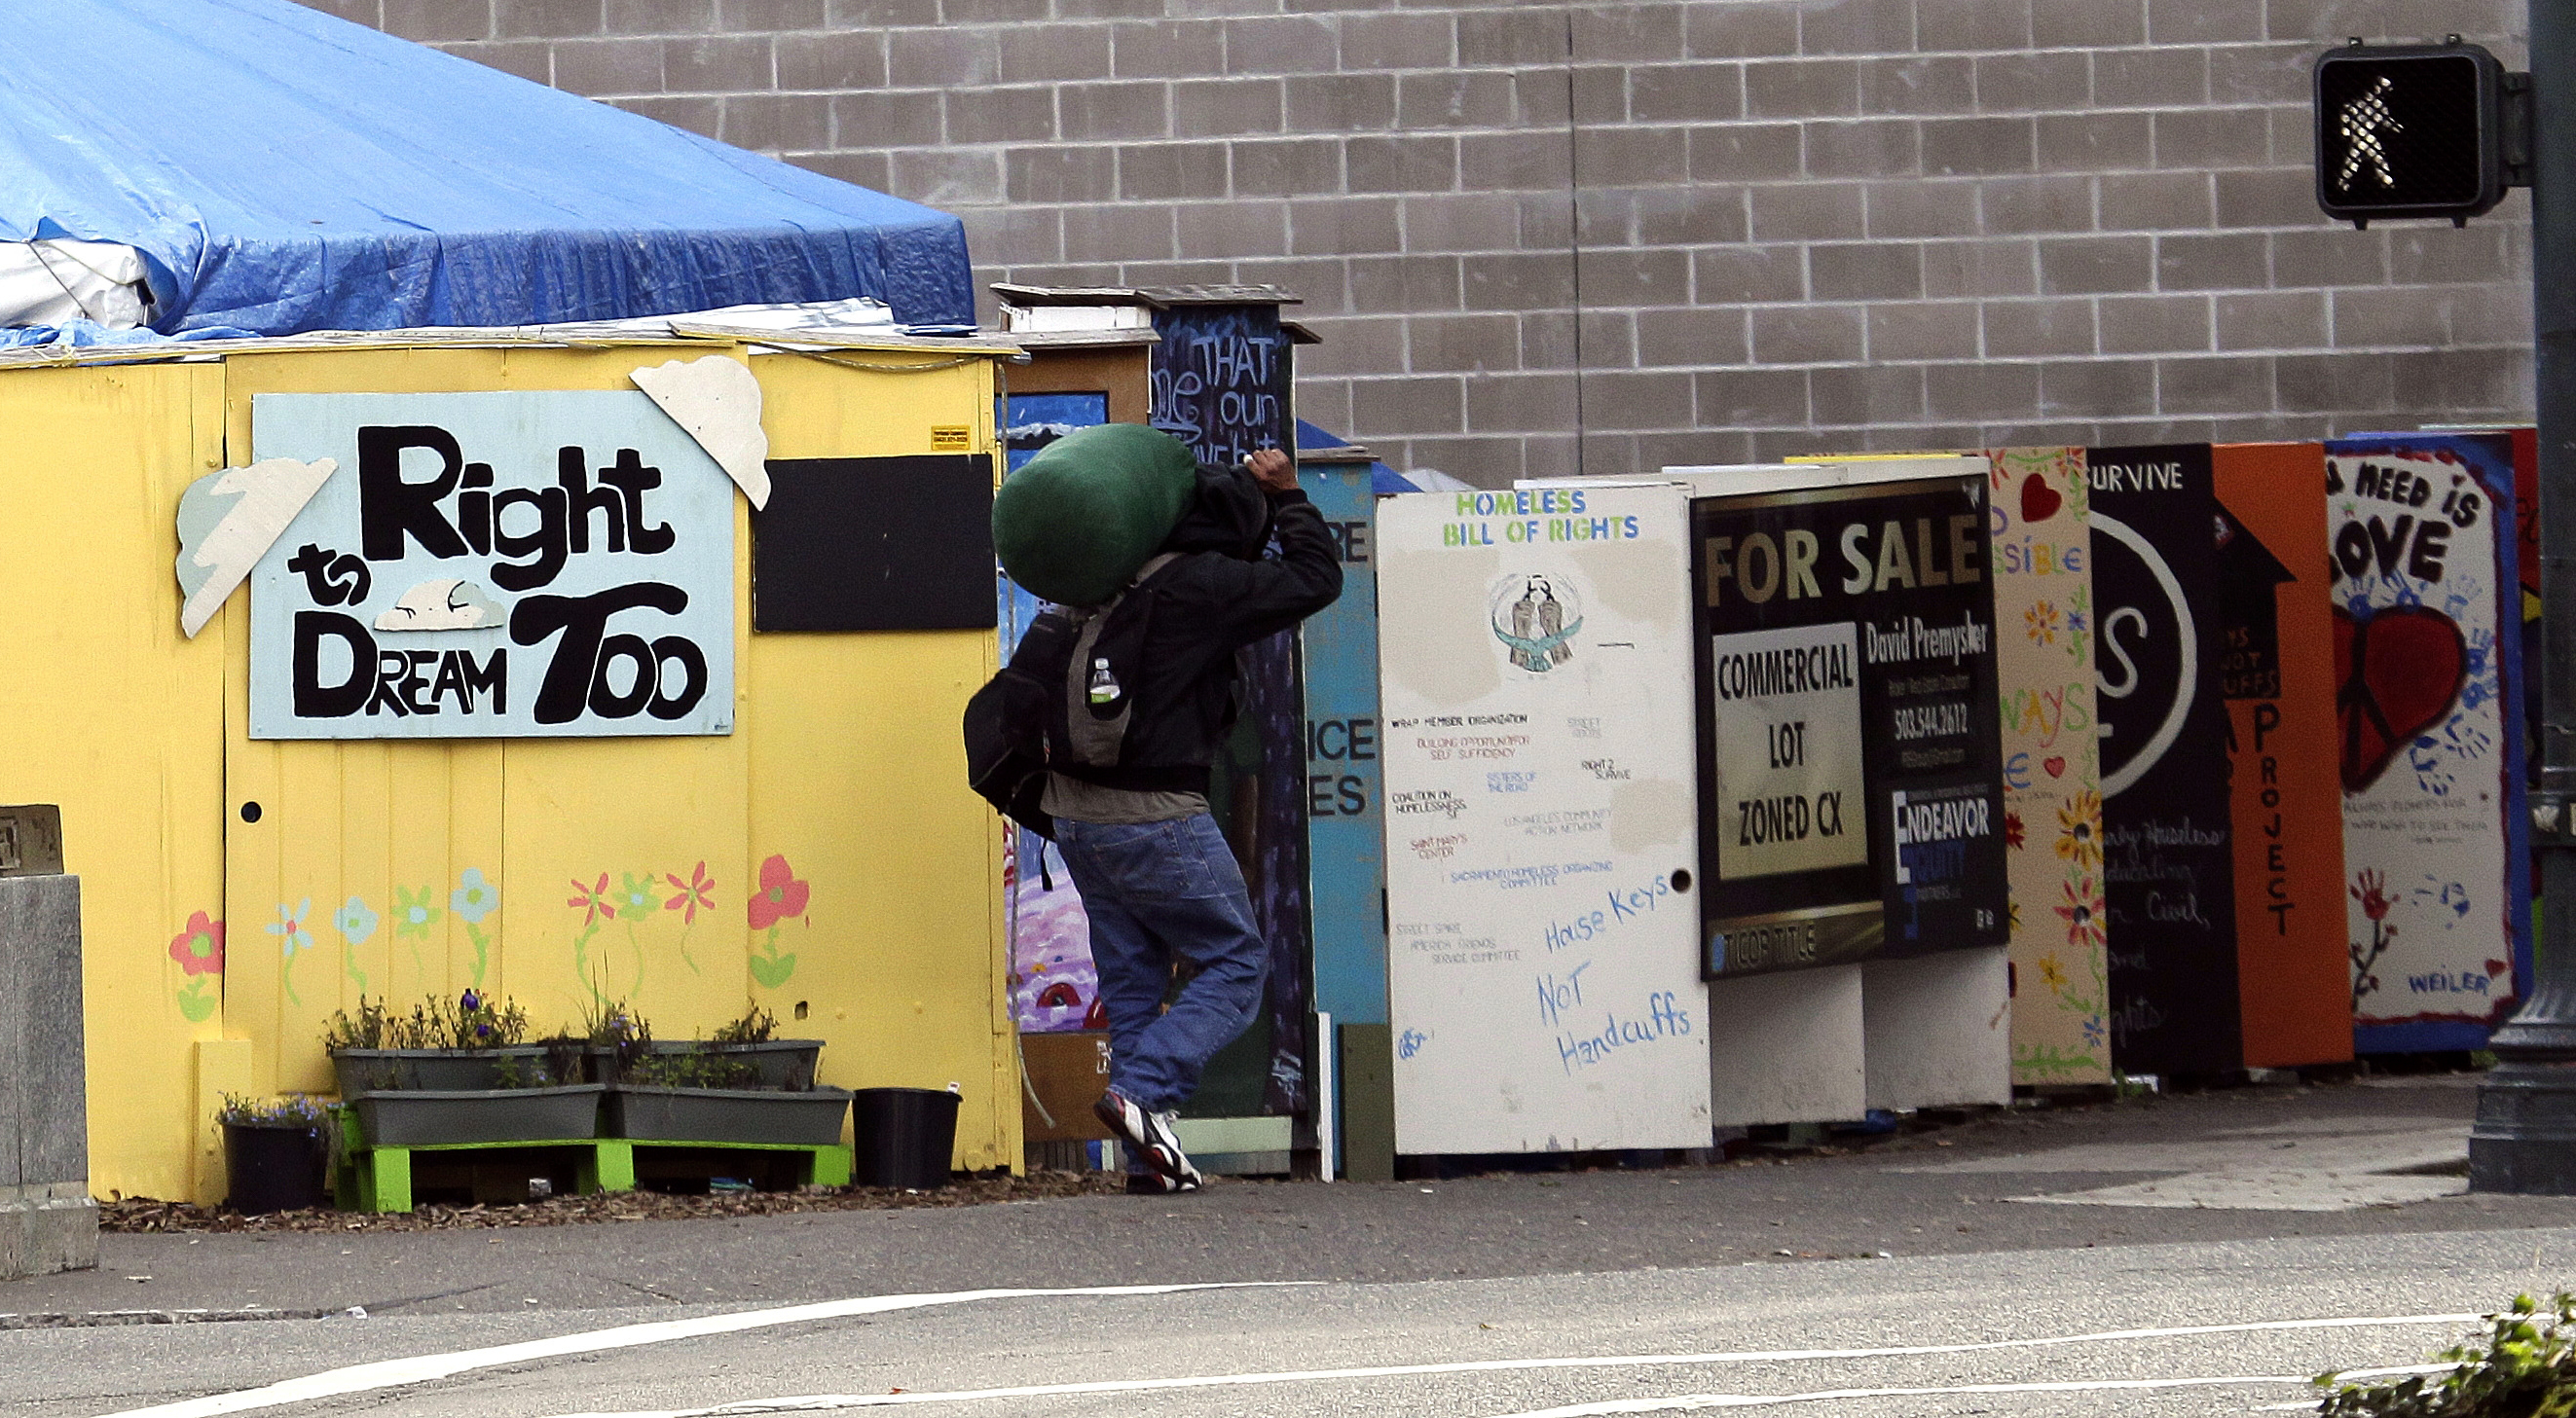 A person walks by the Right 2 Dream Too homeless camp in Portland, Ore. on Oct. 4, 2013.